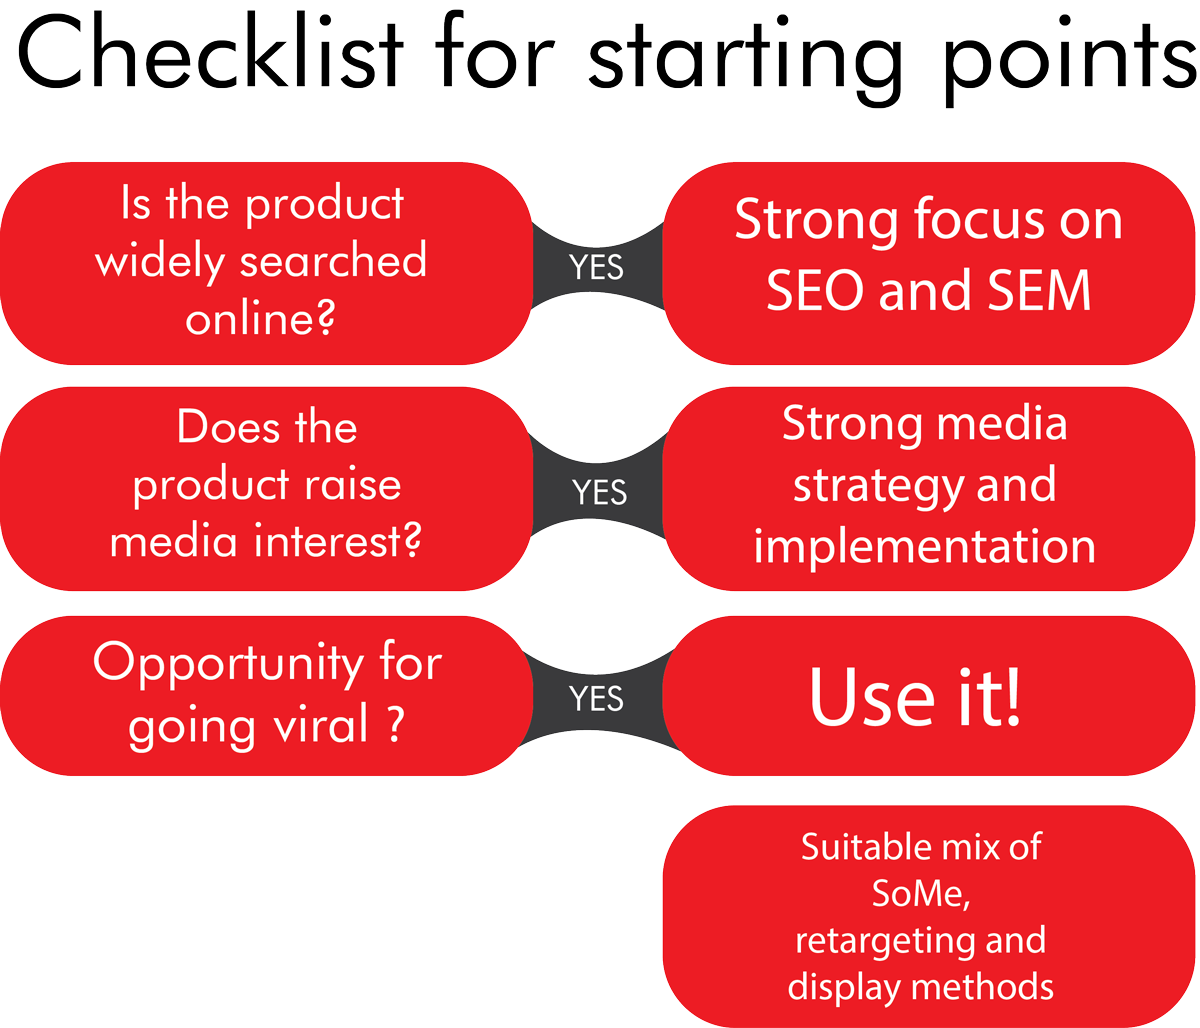 checklist-for-starting-points-f3